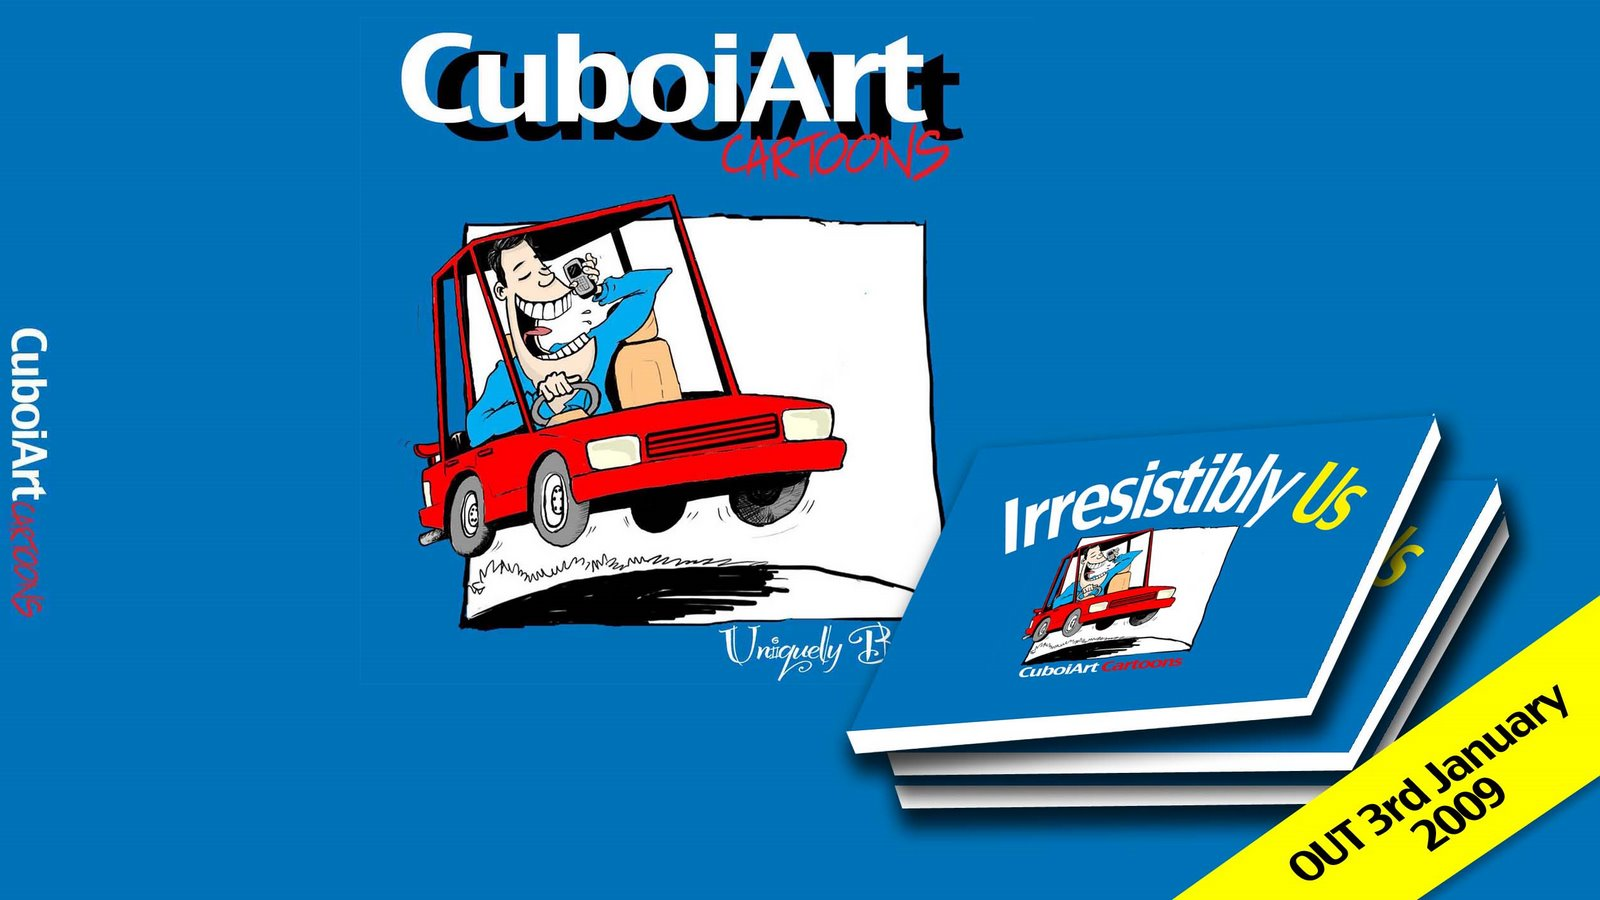 CuboiArt